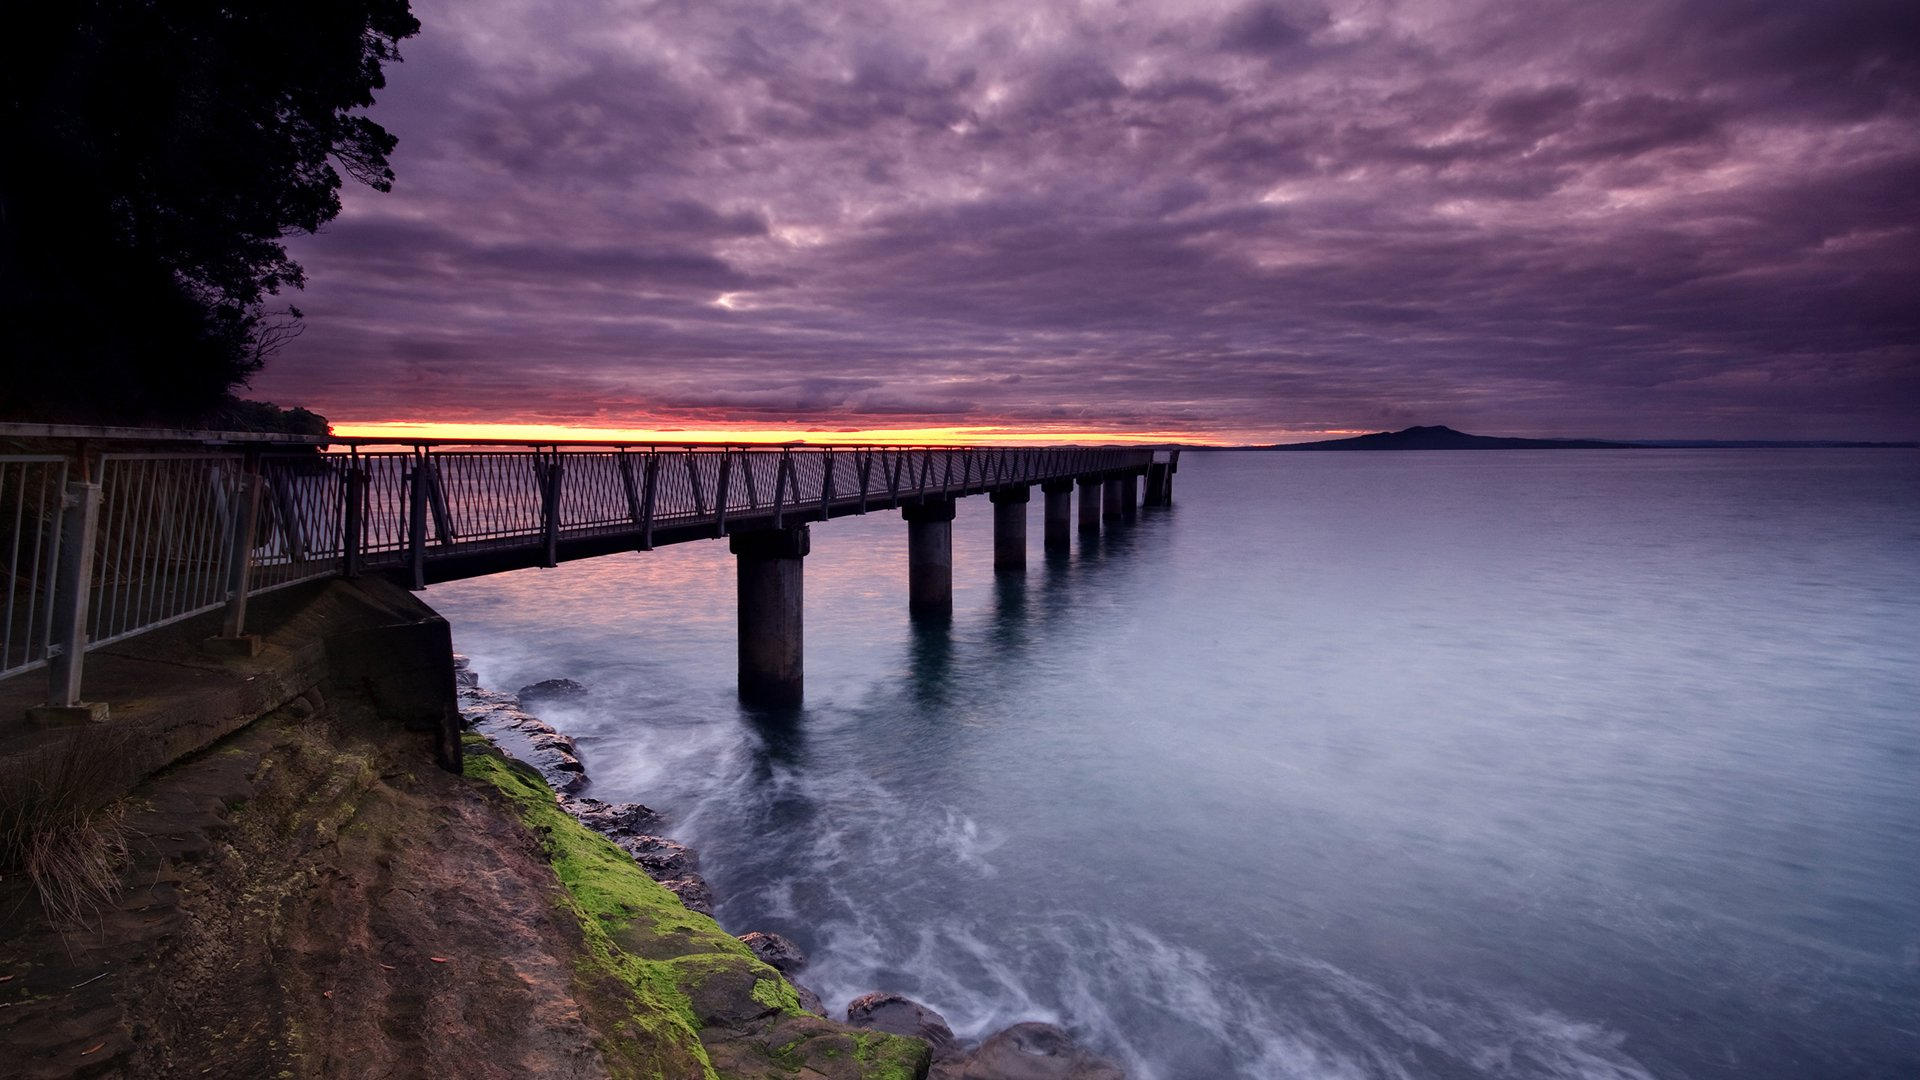 Man Made - Pier  Water Dock Sky Sunset Earth Ocean Wallpaper